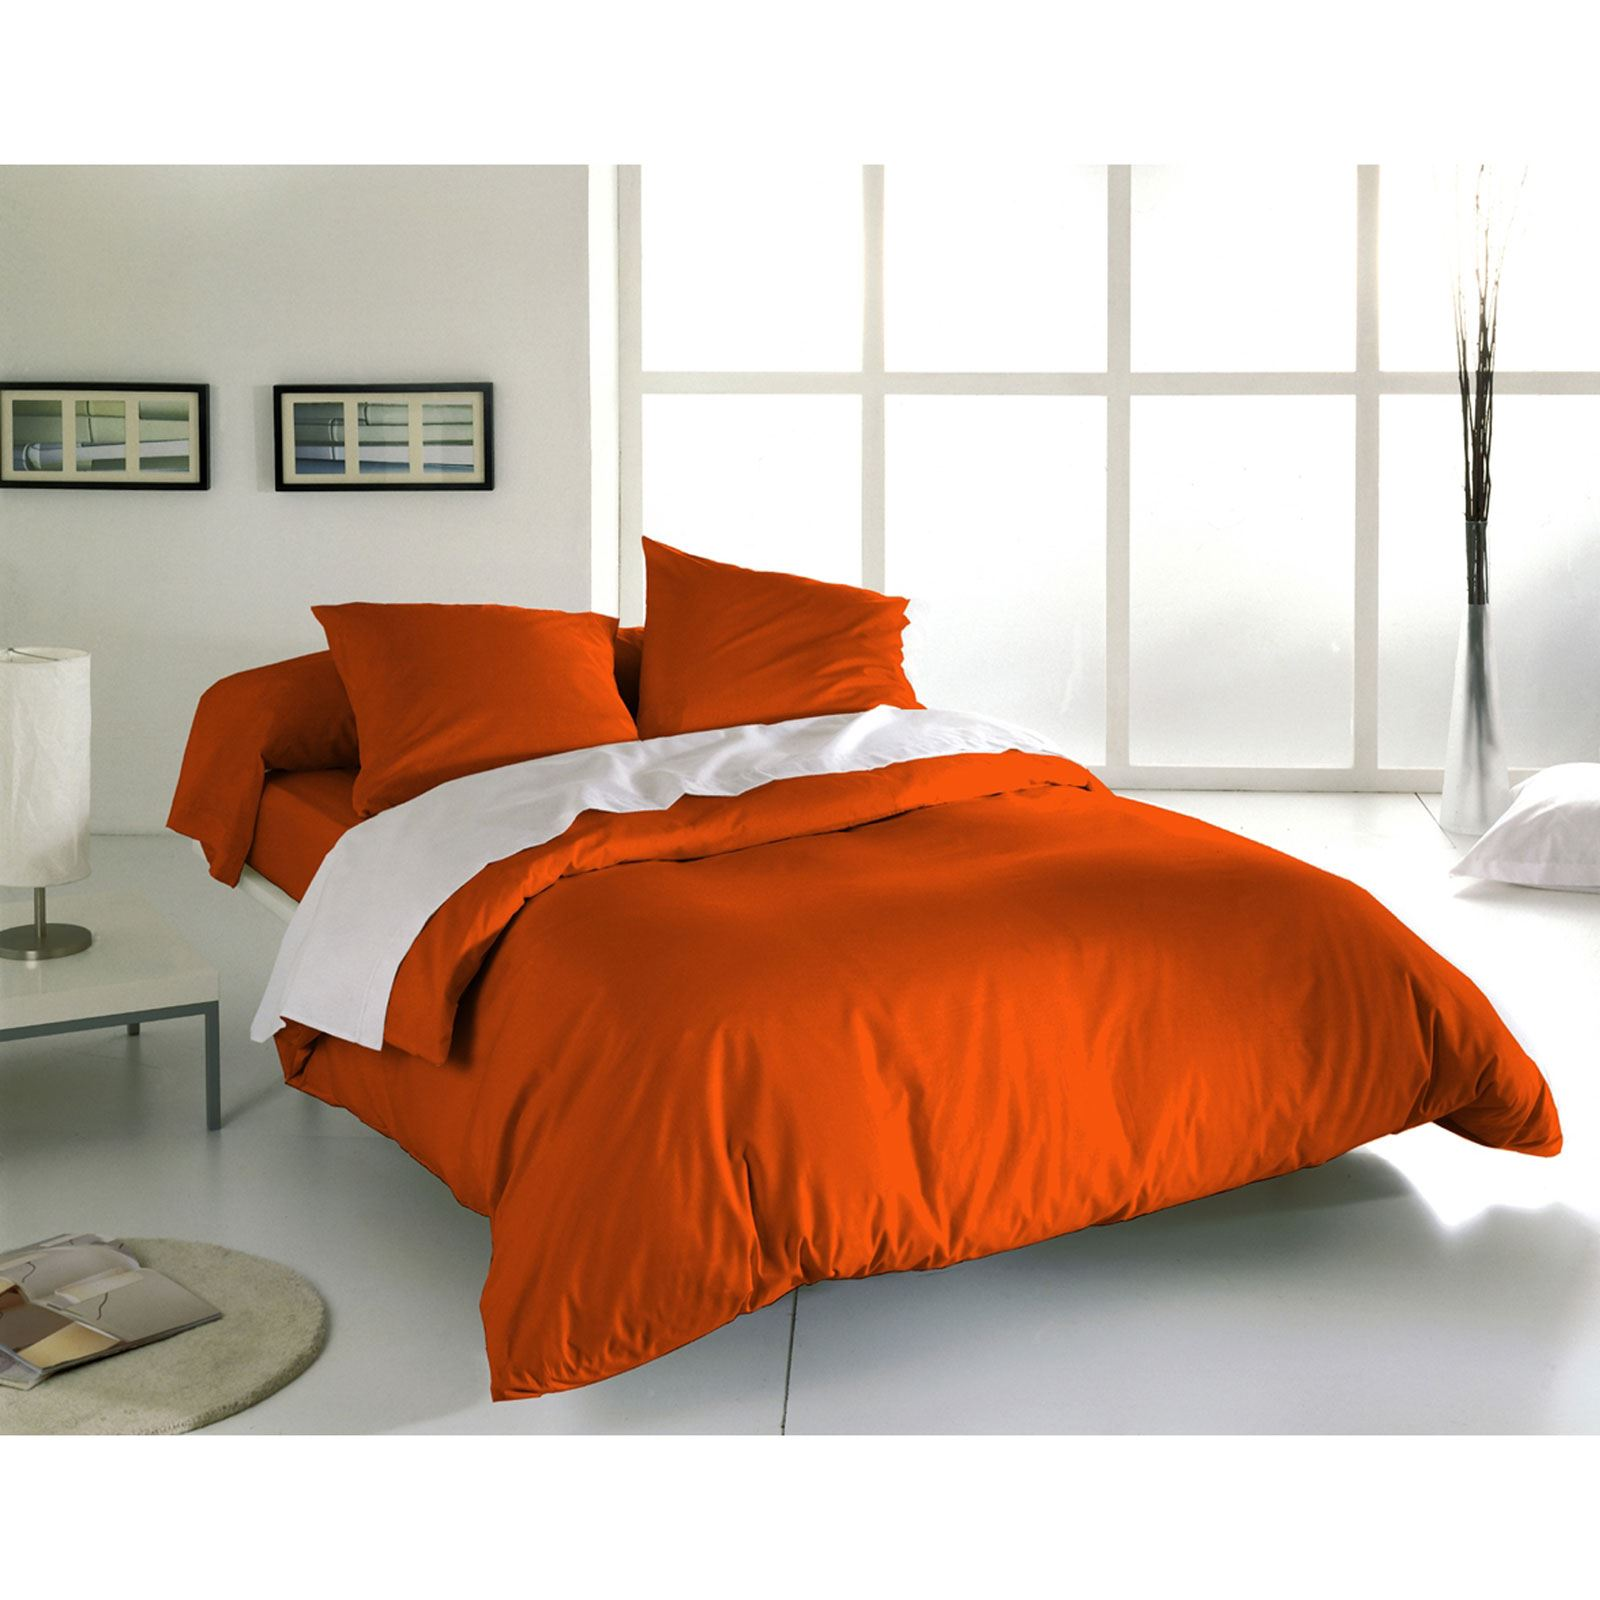 Blanc d agate ensemble housse de couette et taies orange for Ensemble couette